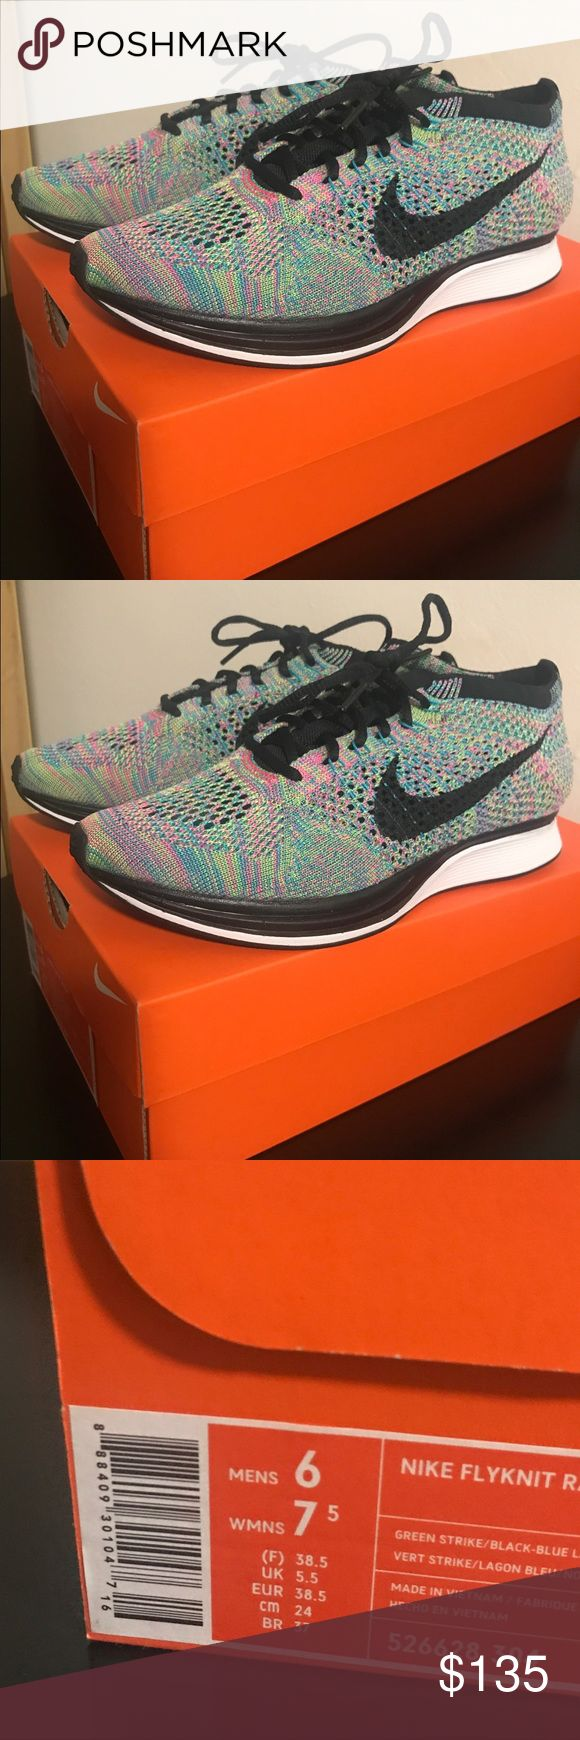 Brand new Nike Multicolor Flyknit Racers Brand new w/ original box. Multicolored Racers. Size 7.5 in women's or 6 in men's. Nike Shoes Athletic Shoes